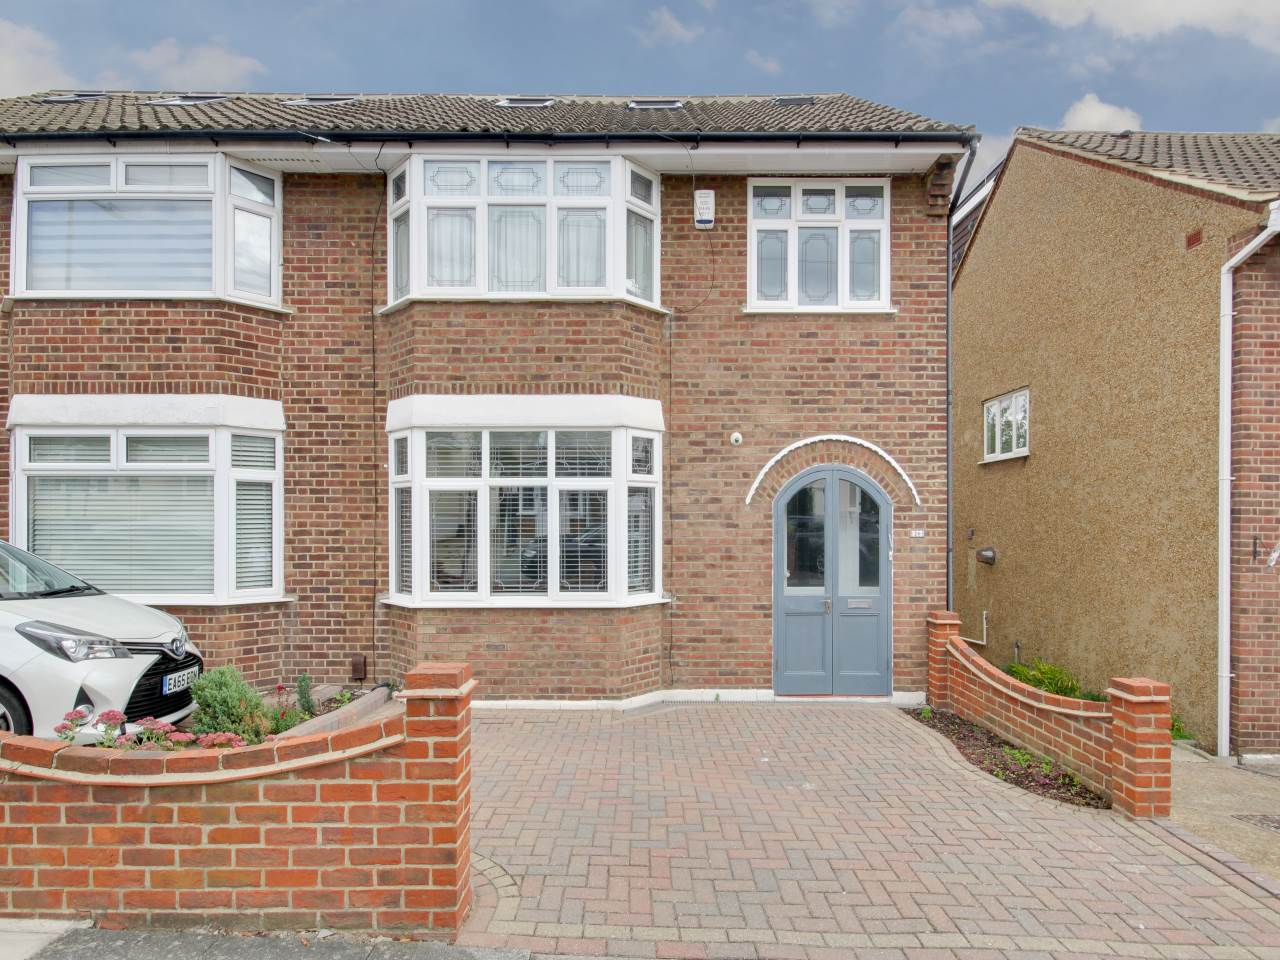 5 bed house for sale in Hainault , IG6